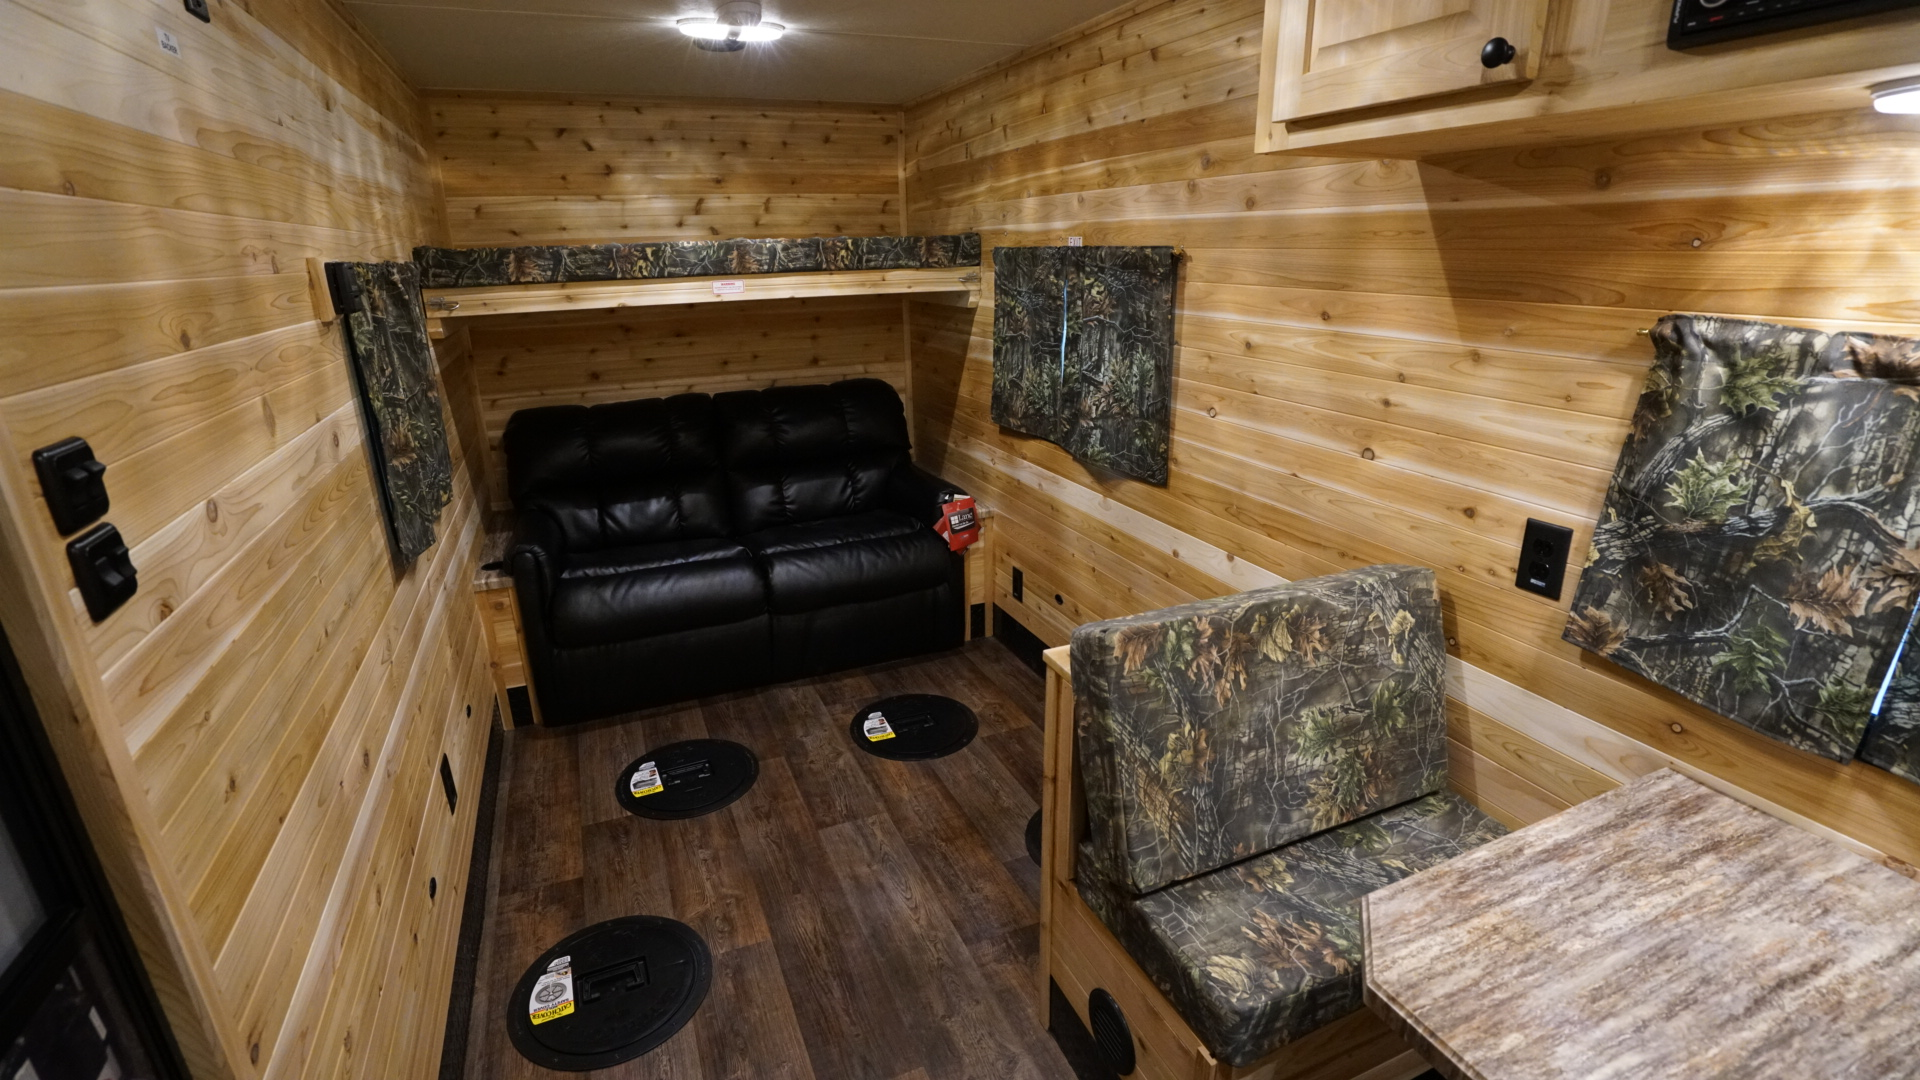 Fishing holes are built into the floor of an Ice Fishing RV